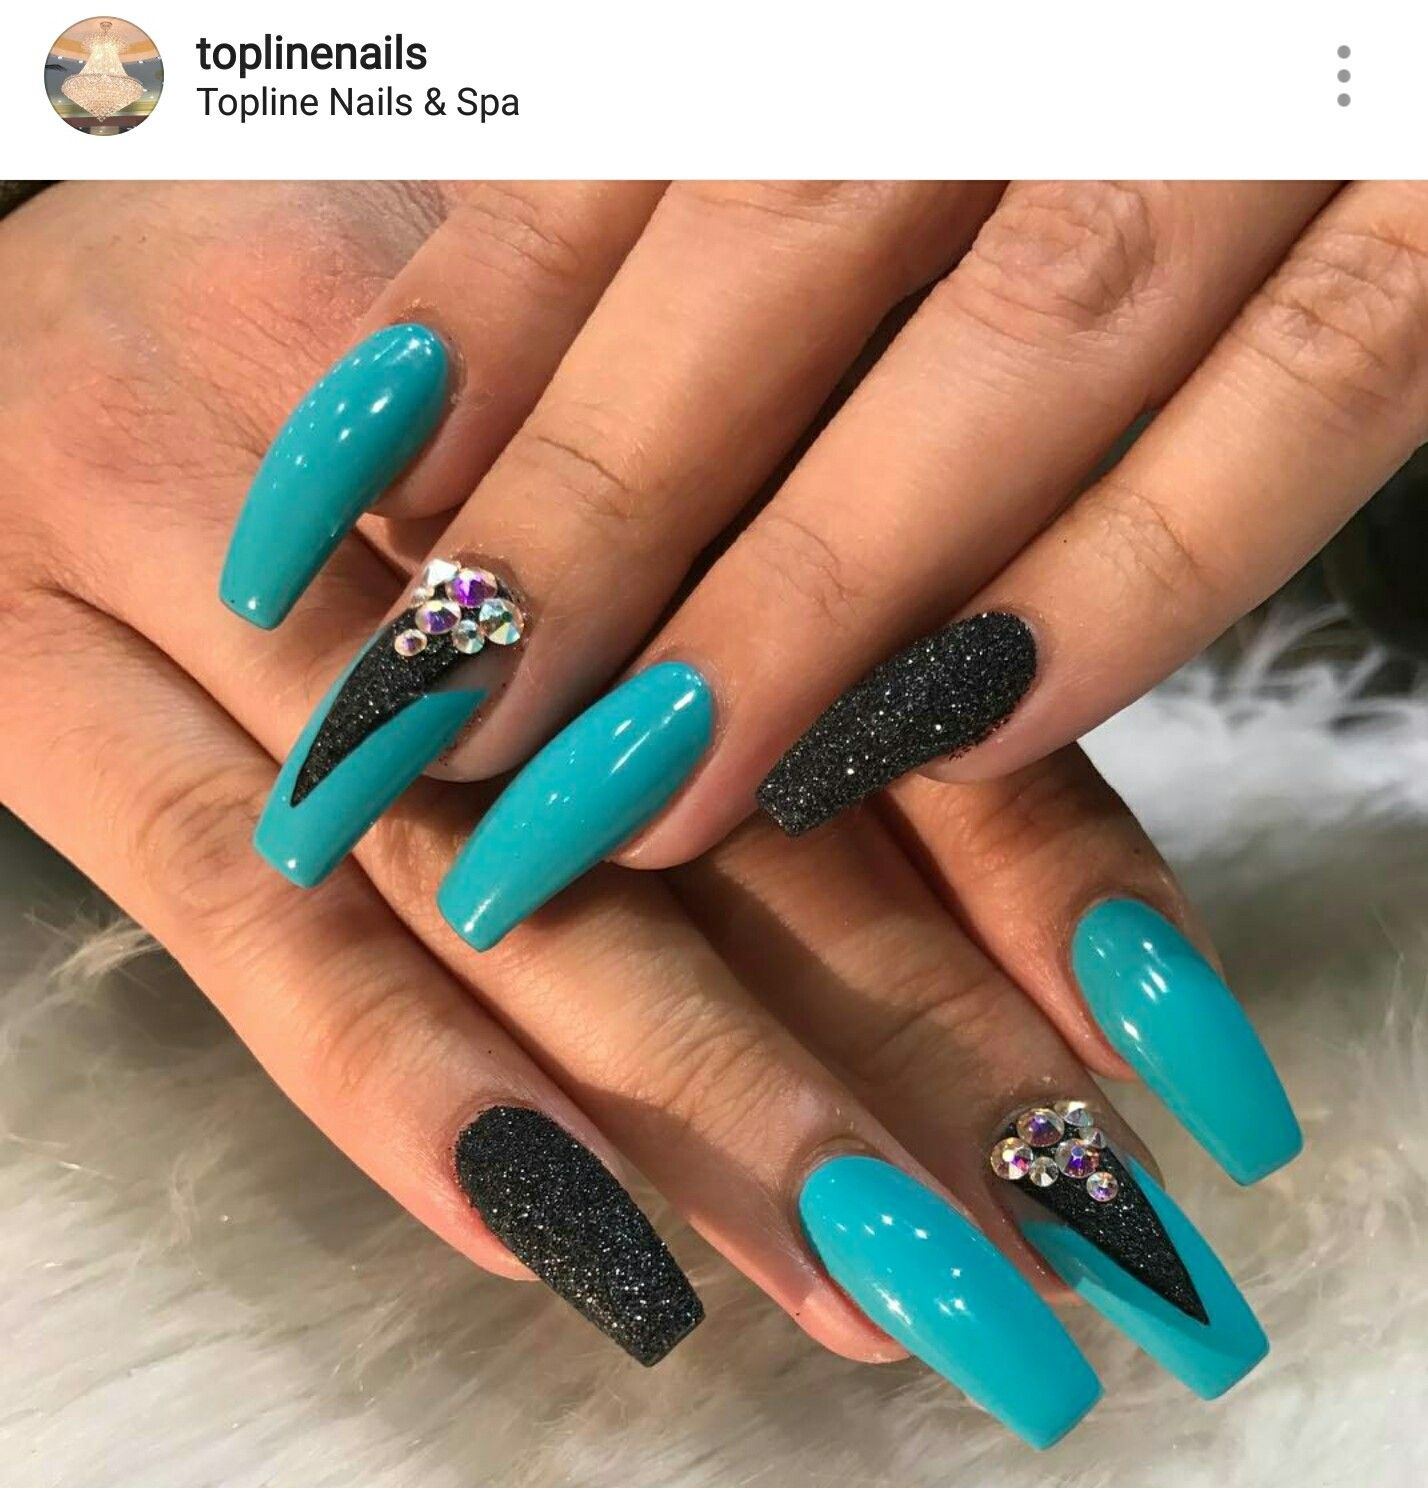 Square Nails. Acrylic Nails. Turquoise Nails. Turquoise Acrylic Nails, Turquoise  Nail Designs - Square Nails. Acrylic Nails. Turquoise Nails. Nails In 2018